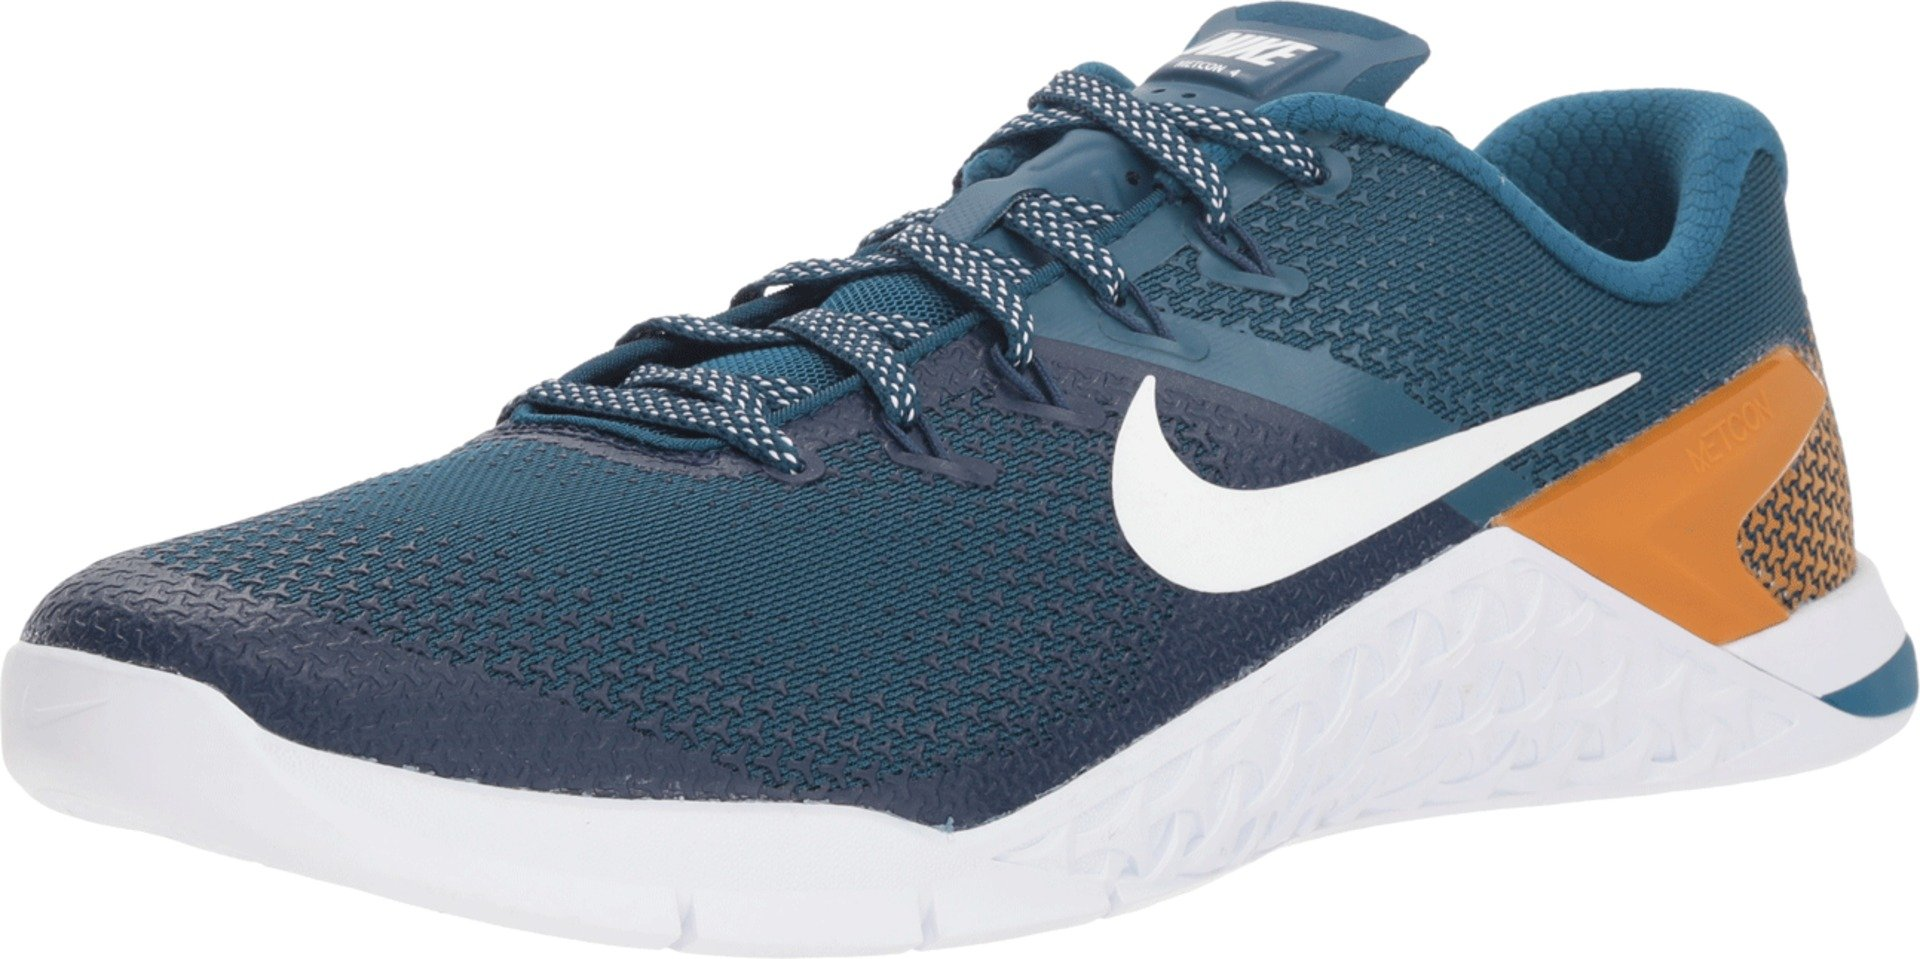 bad49f8d4c4a6 Nike Metcon 4 Mens Ah7453-400, Blue Force/White-monarch-orange Pulse, 12 M  US